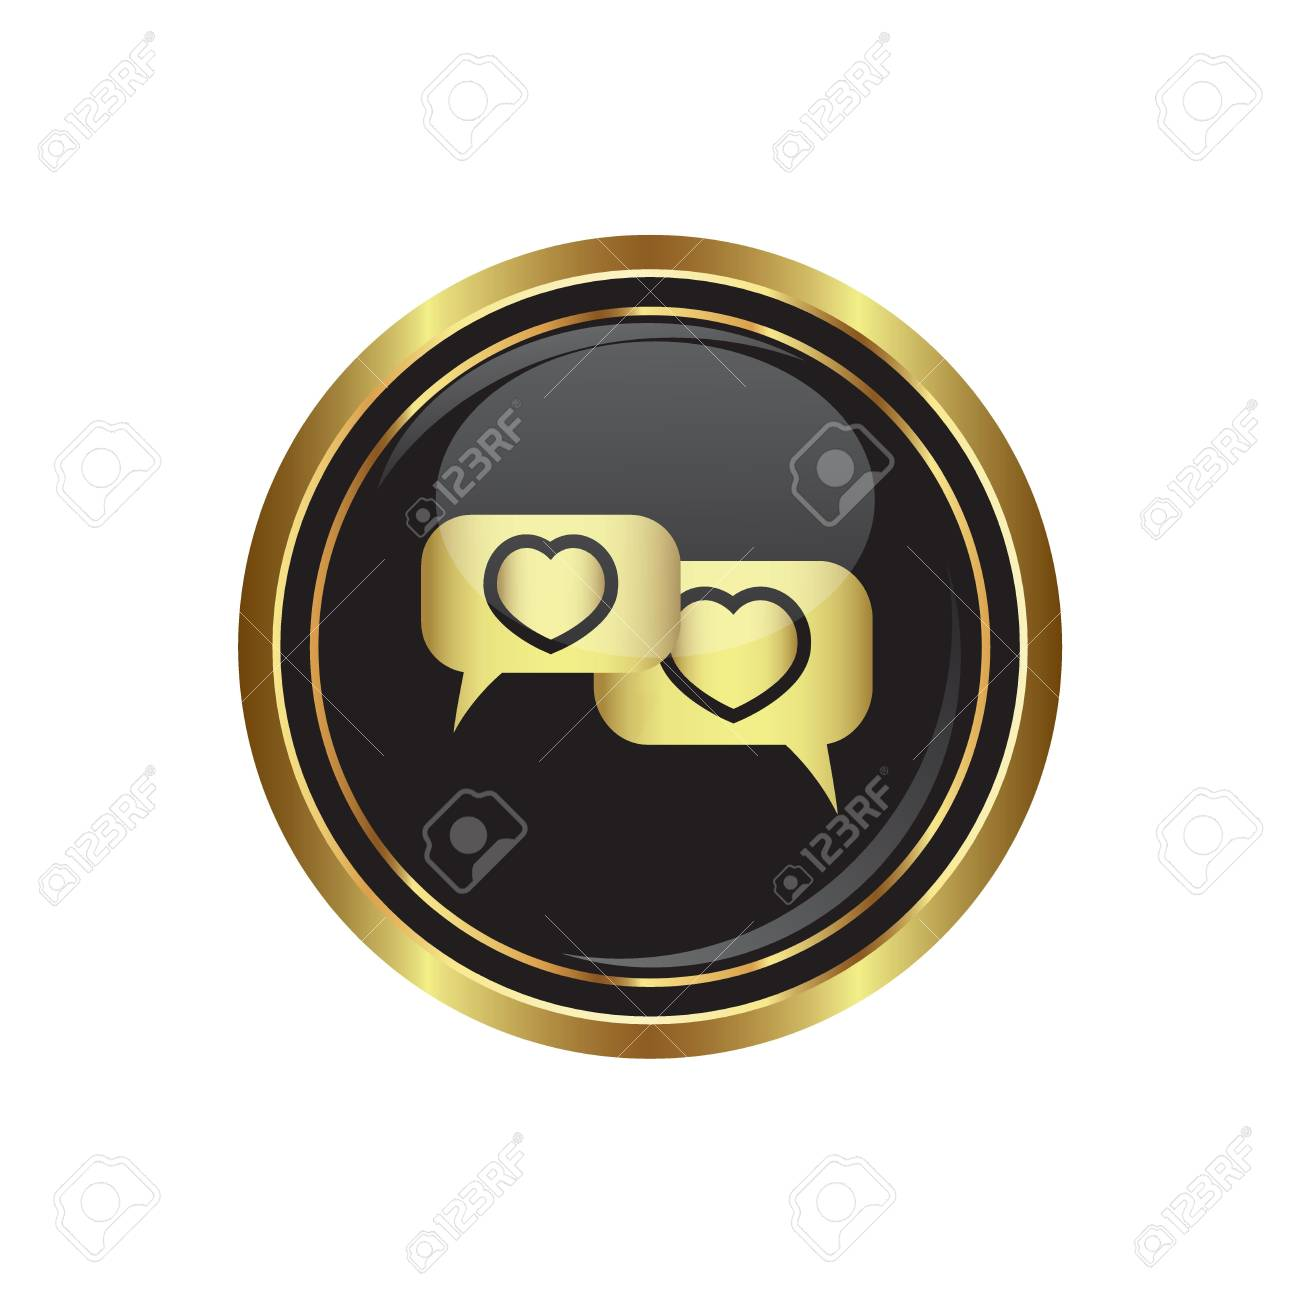 Speech bubbles with hearts icon on the black with gold round button  Vector illustration Stock Vector - 17856141